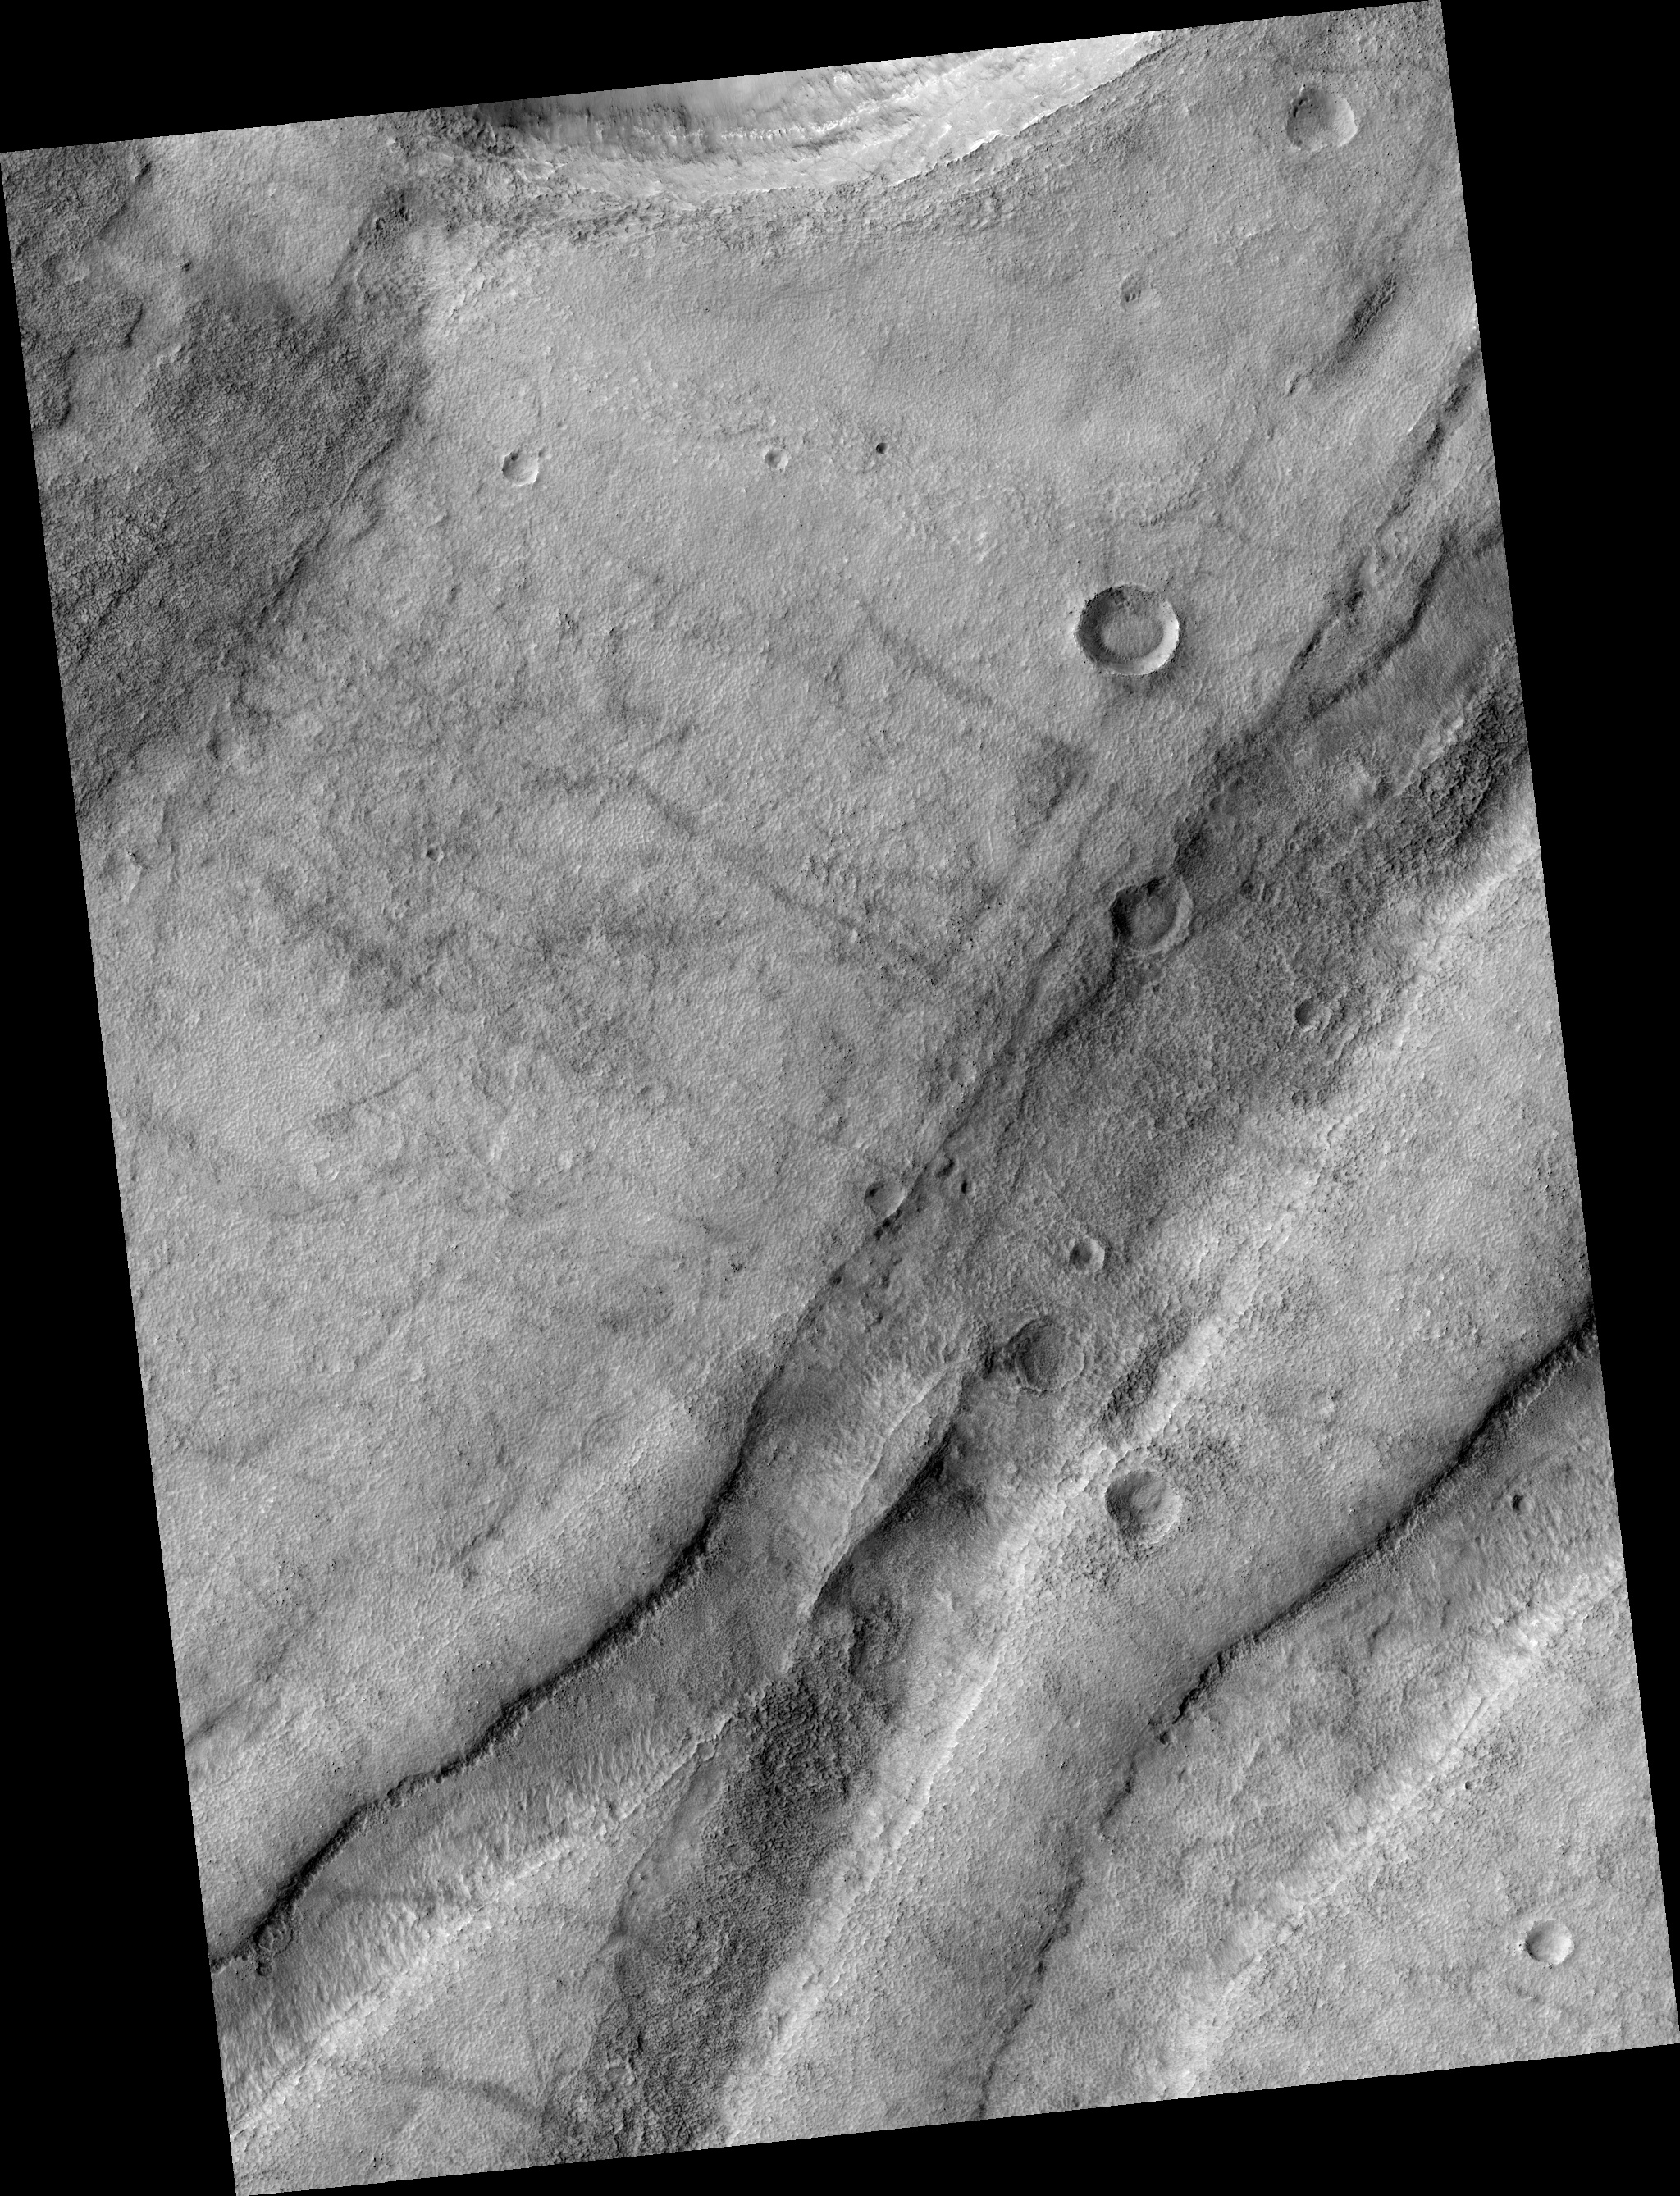 HiRISE   Olivine-Rich Wall Rock of Icaria Fossae and nearby Crater Wall  (ESP_022859_1365)